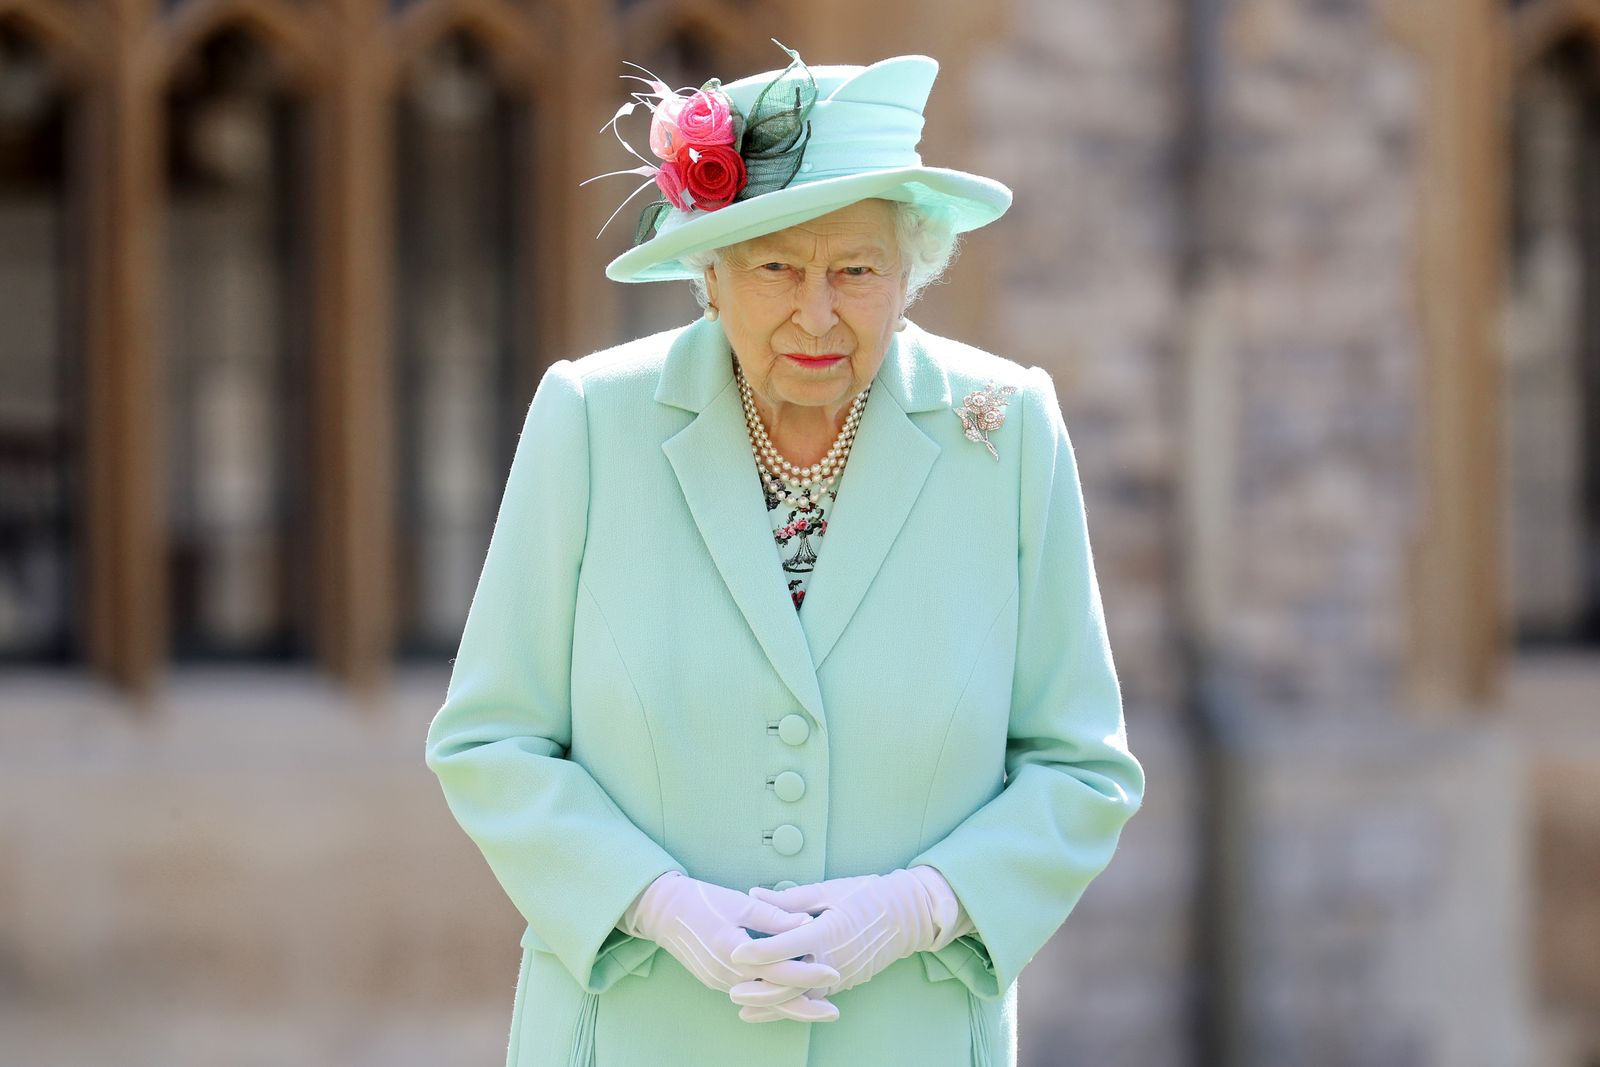 Queen Elizabeth II after awarding Captain Sir Thomas Moore with the insignia of Knight Bachelor at Windsor Castle on July 17, 2020 | Getty Images